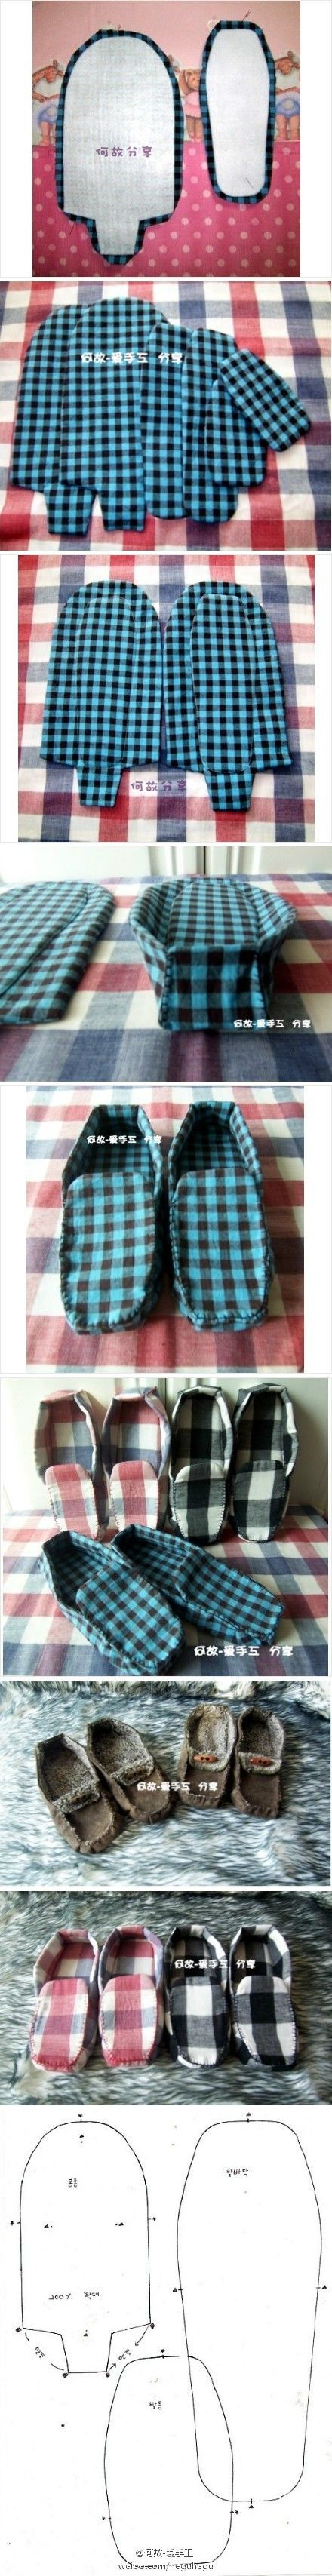 DIY Slippers! Perfect for little ones who out grown the shoes so quickly!